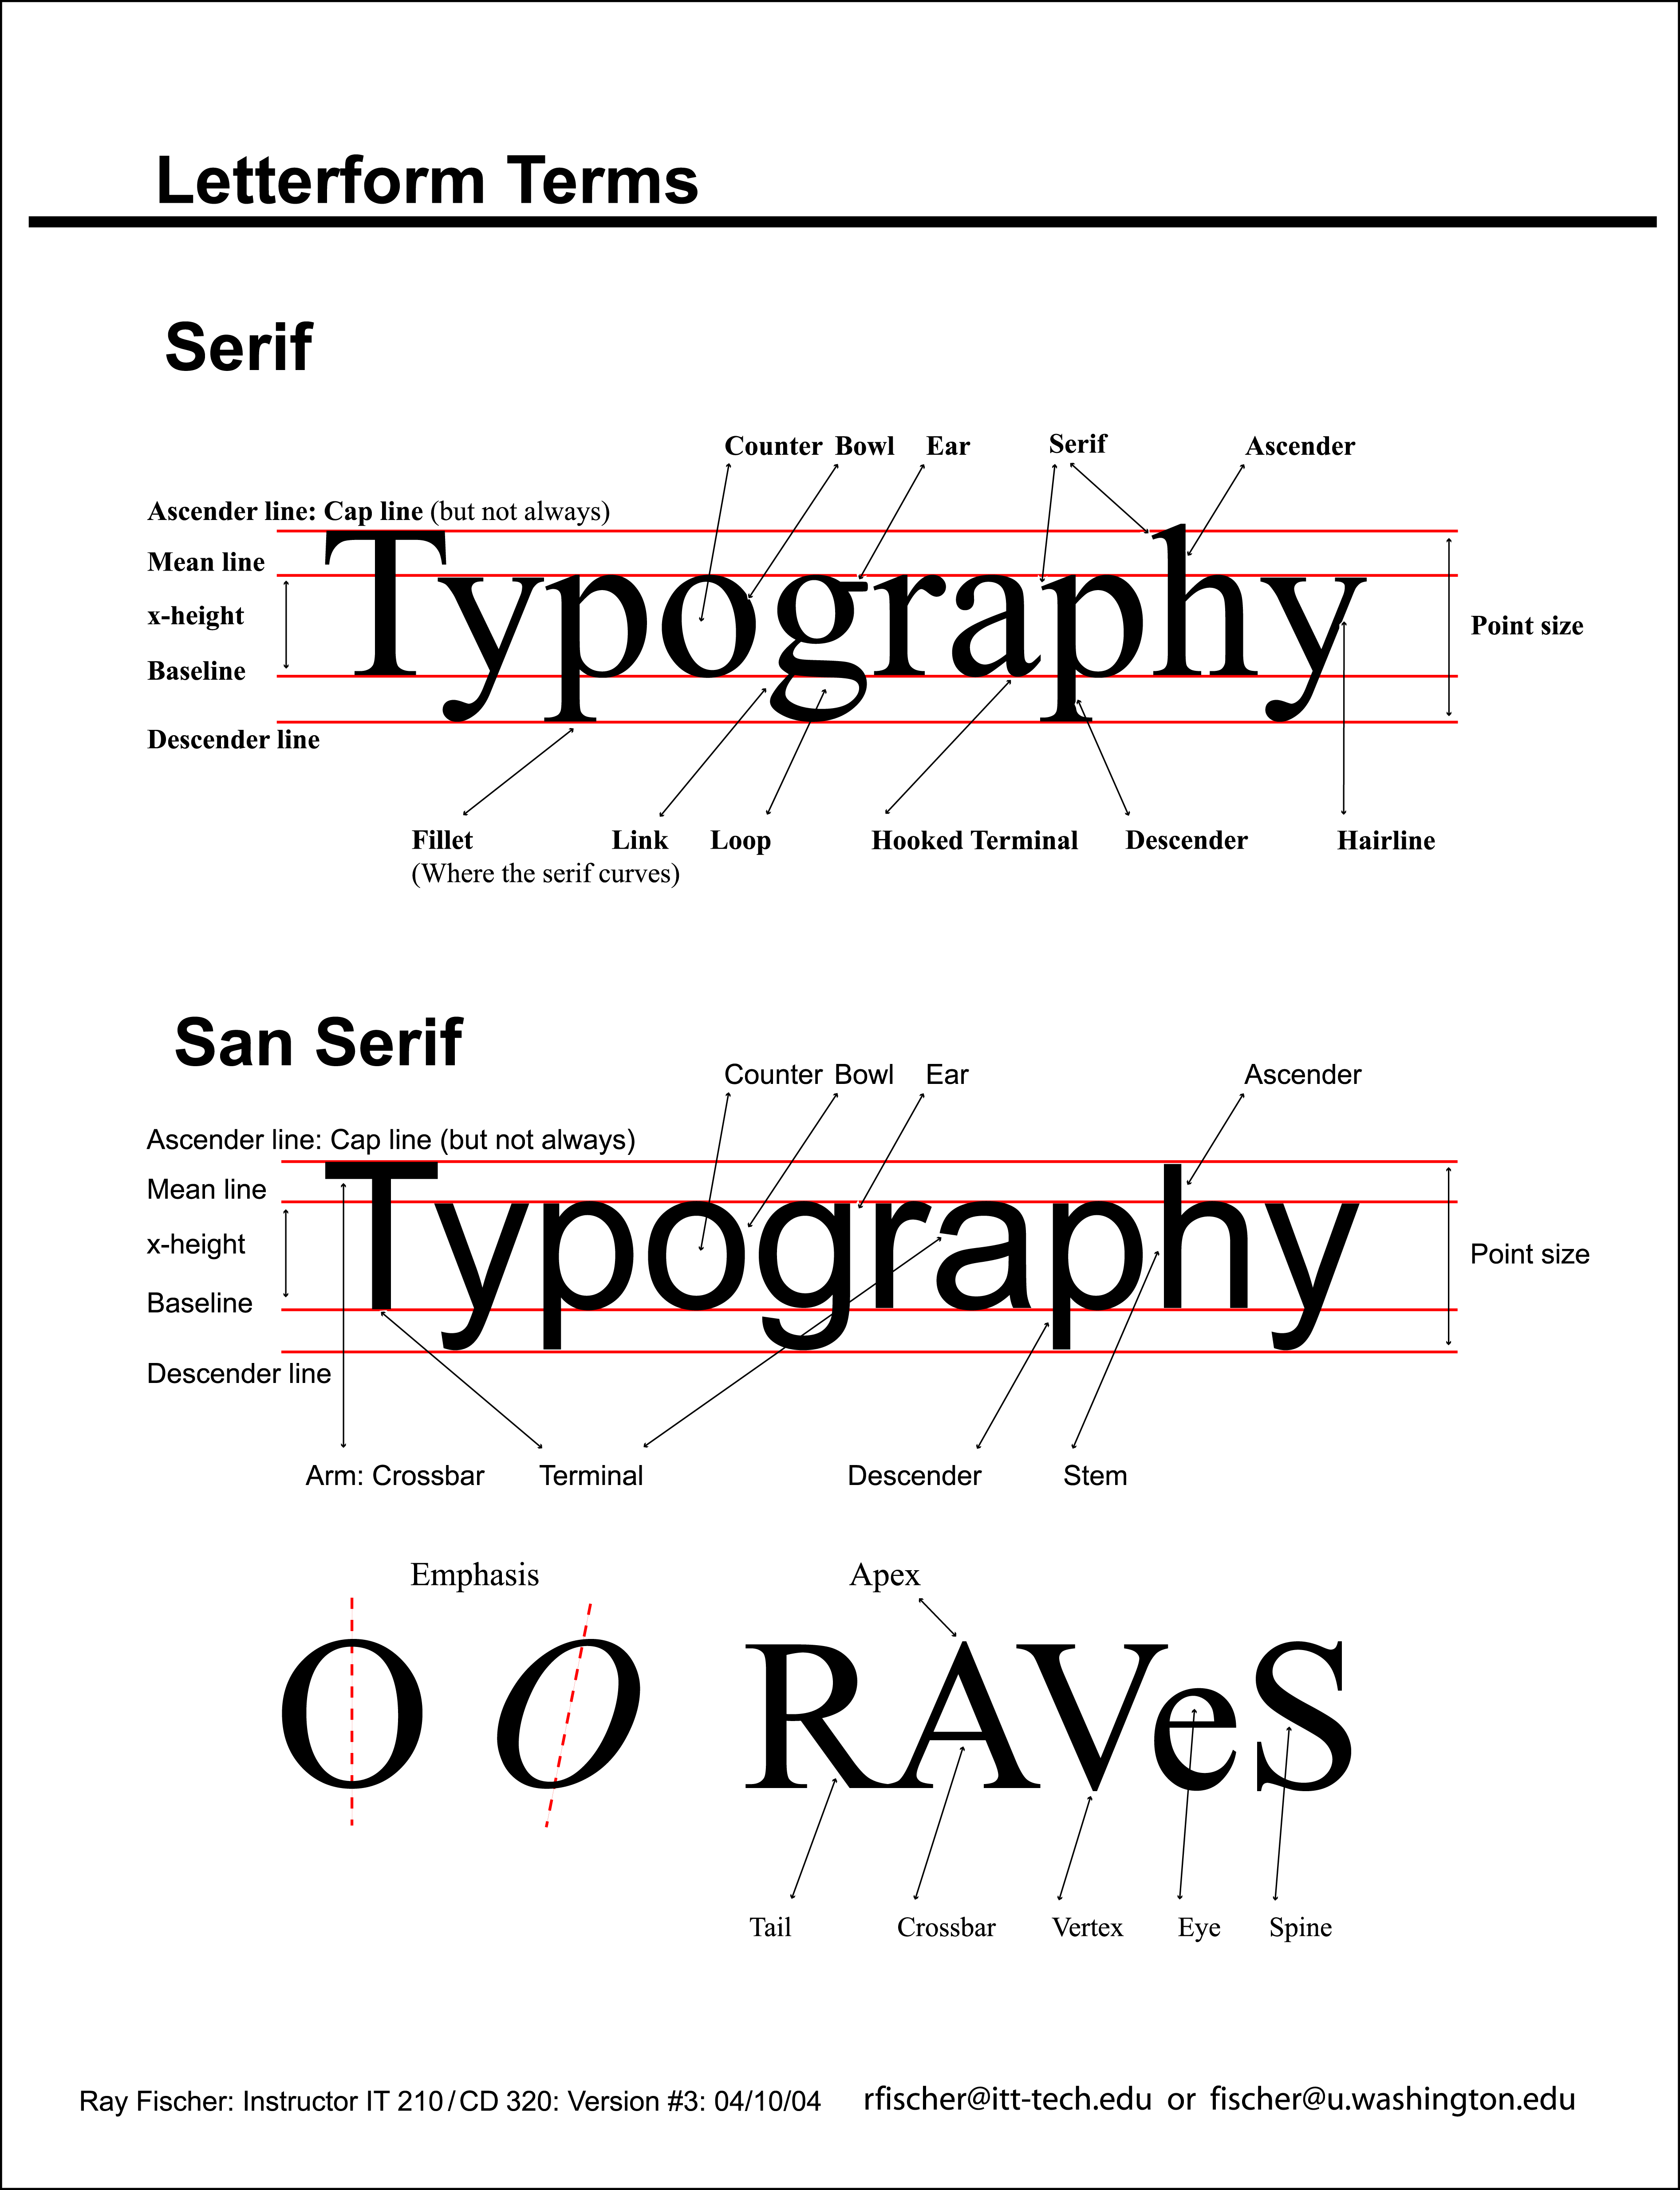 Letterform basics for writers the good page chart of letterform terms showing baseline serifs counters ascender x height altavistaventures Image collections